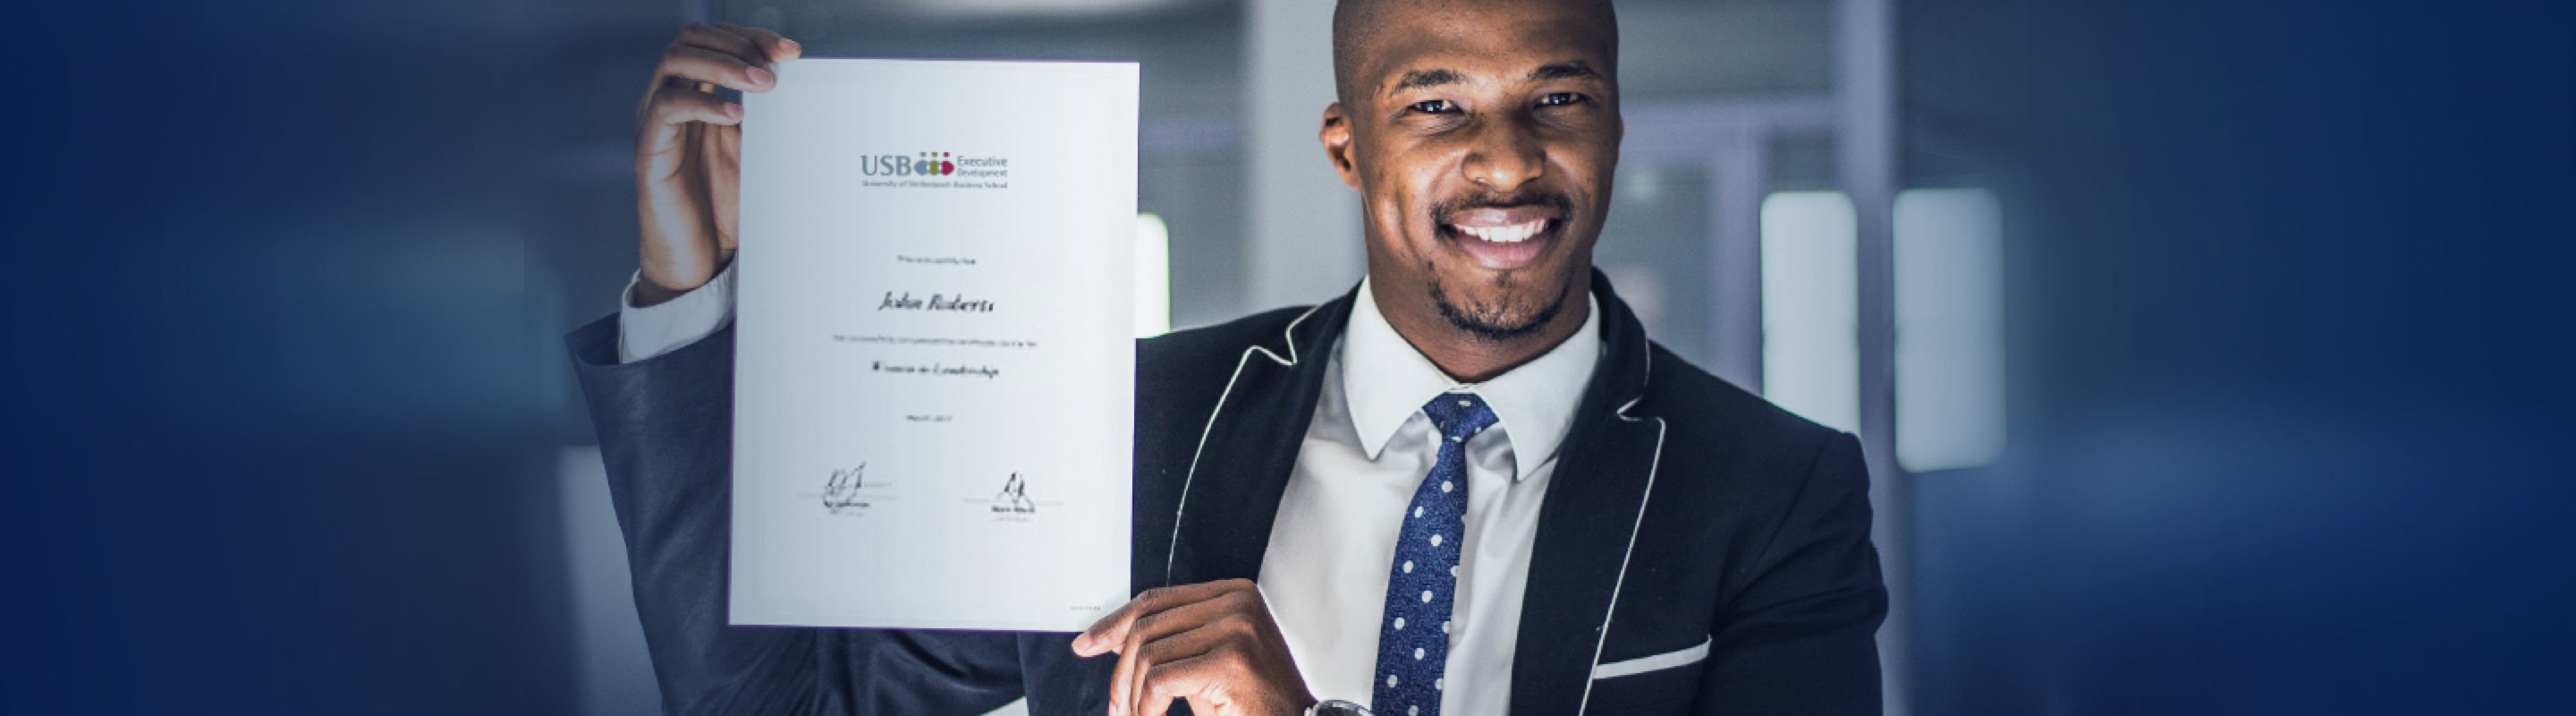 Study Business Leadership And Management Short Course At Masterstart